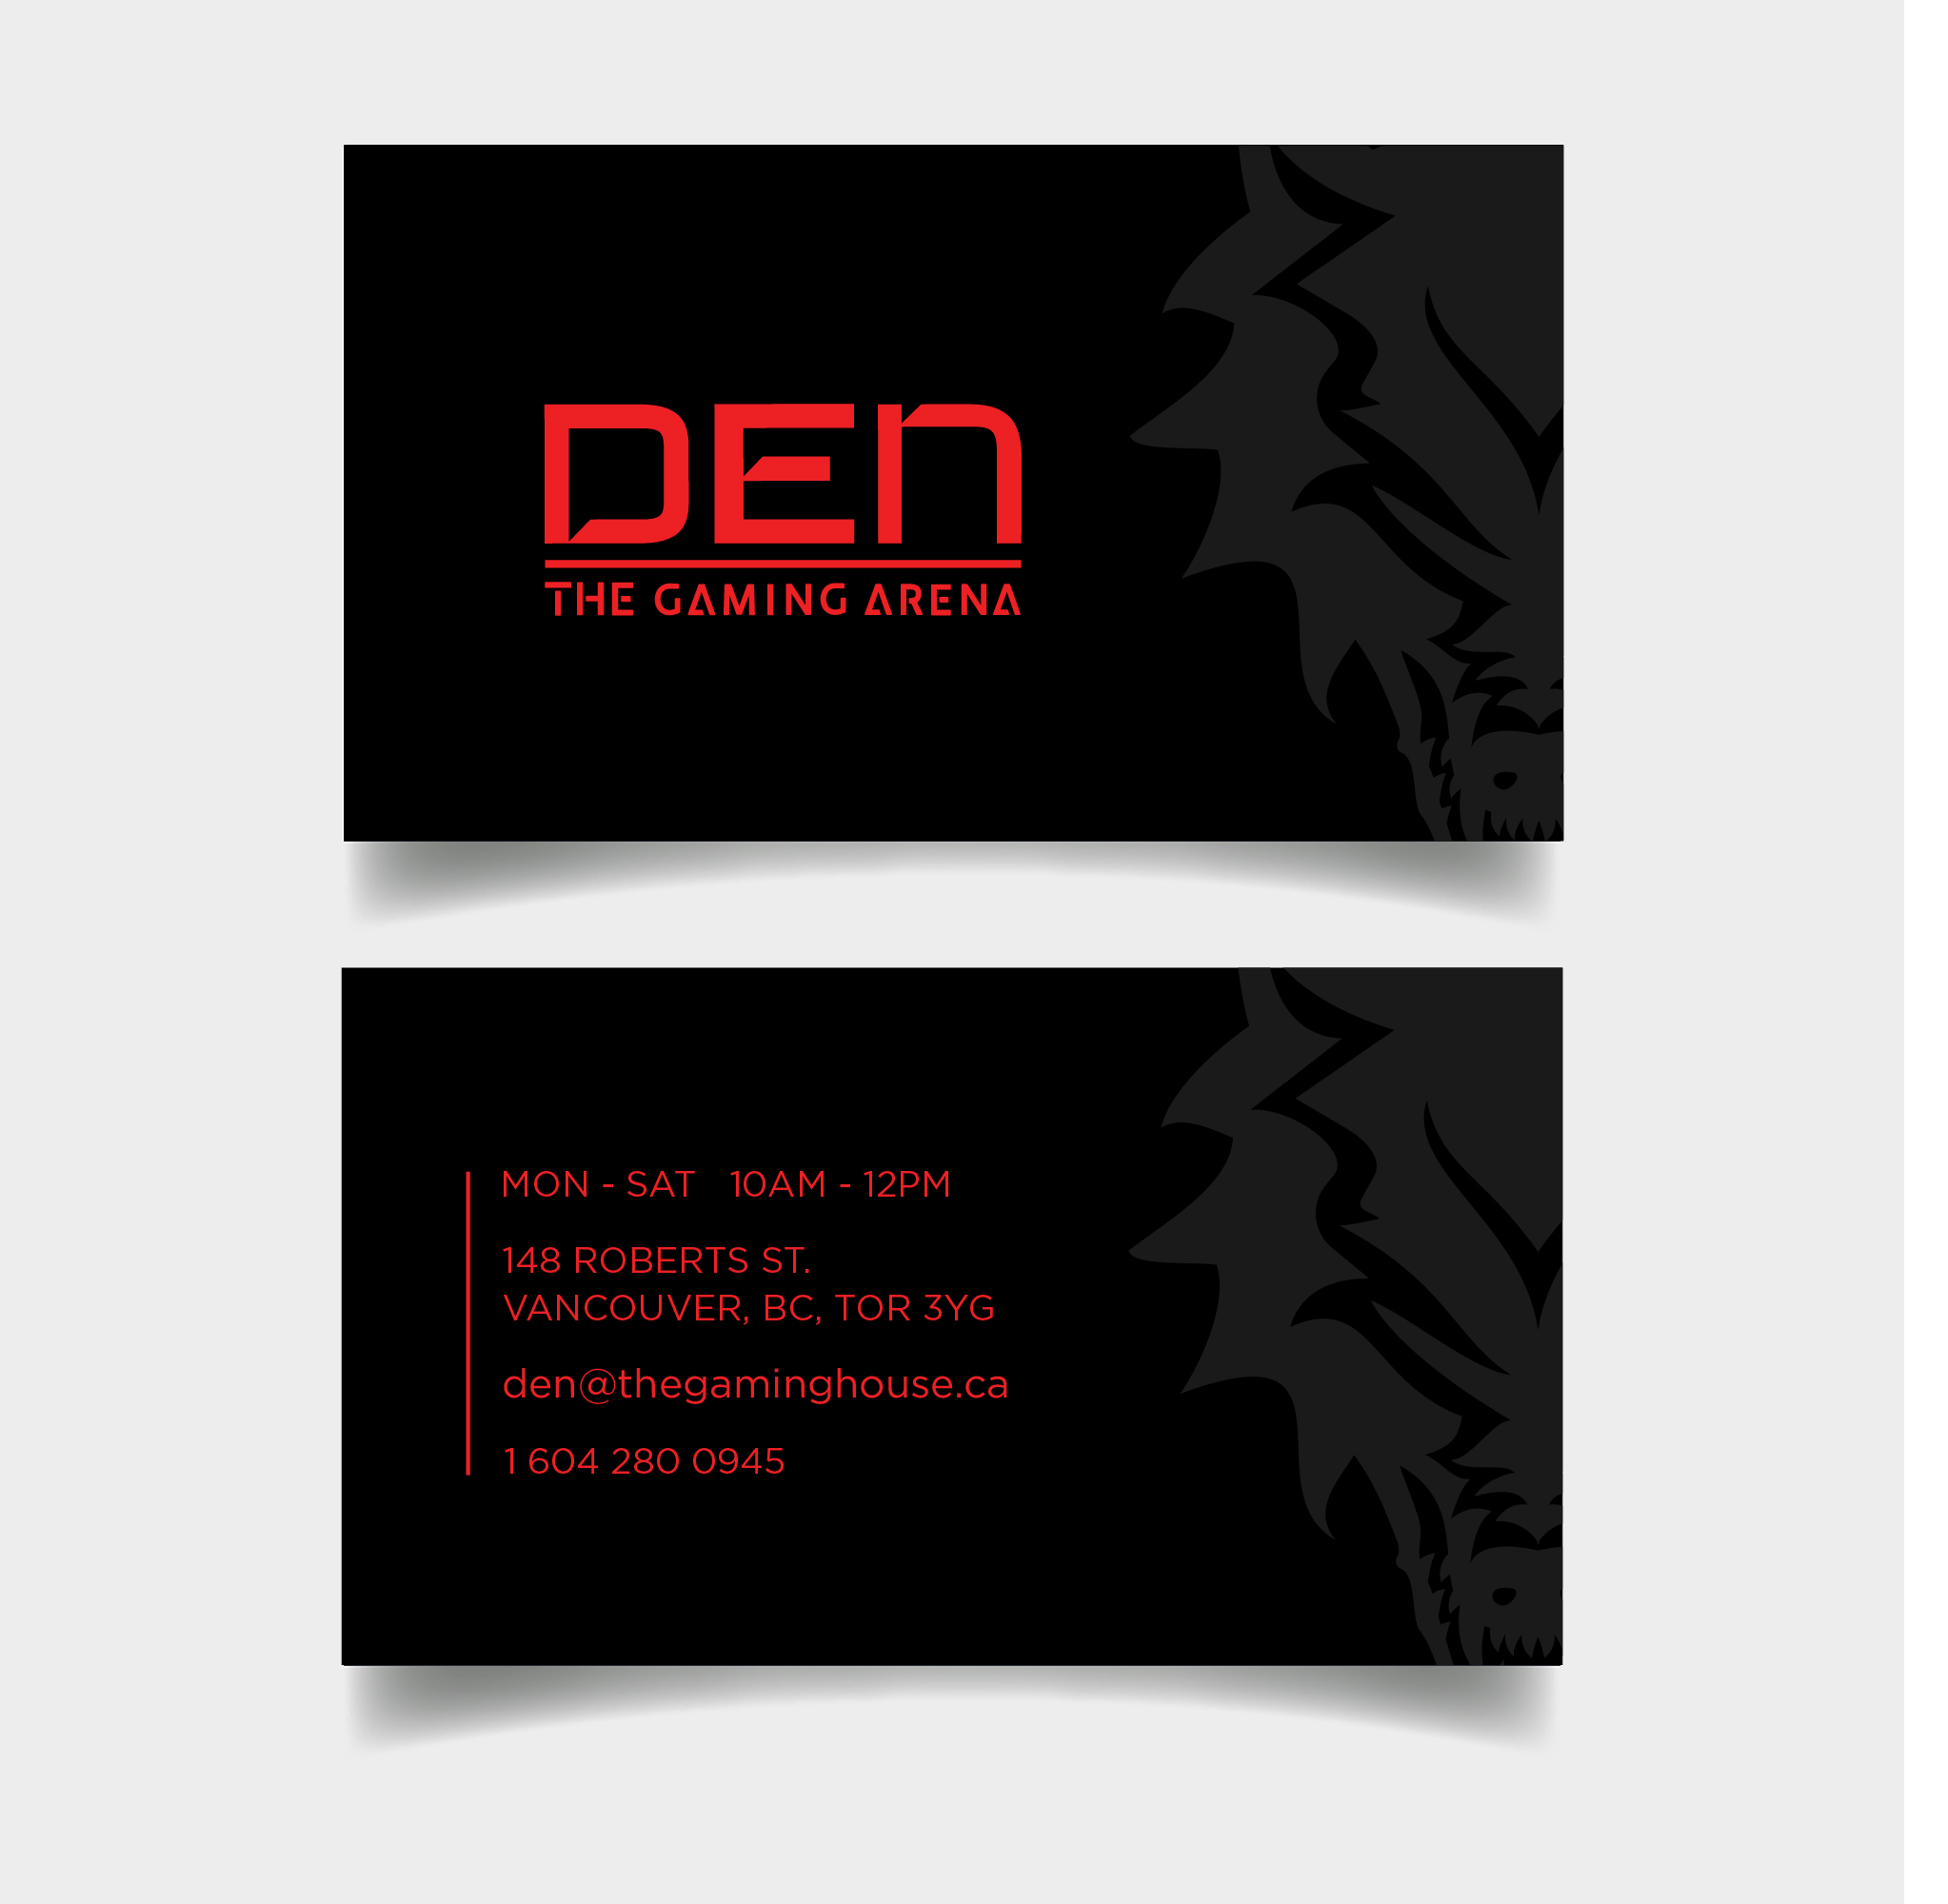 BUSINESS Card - Slate on pitch, the design is meant to be stark in contrast to the red of the type.